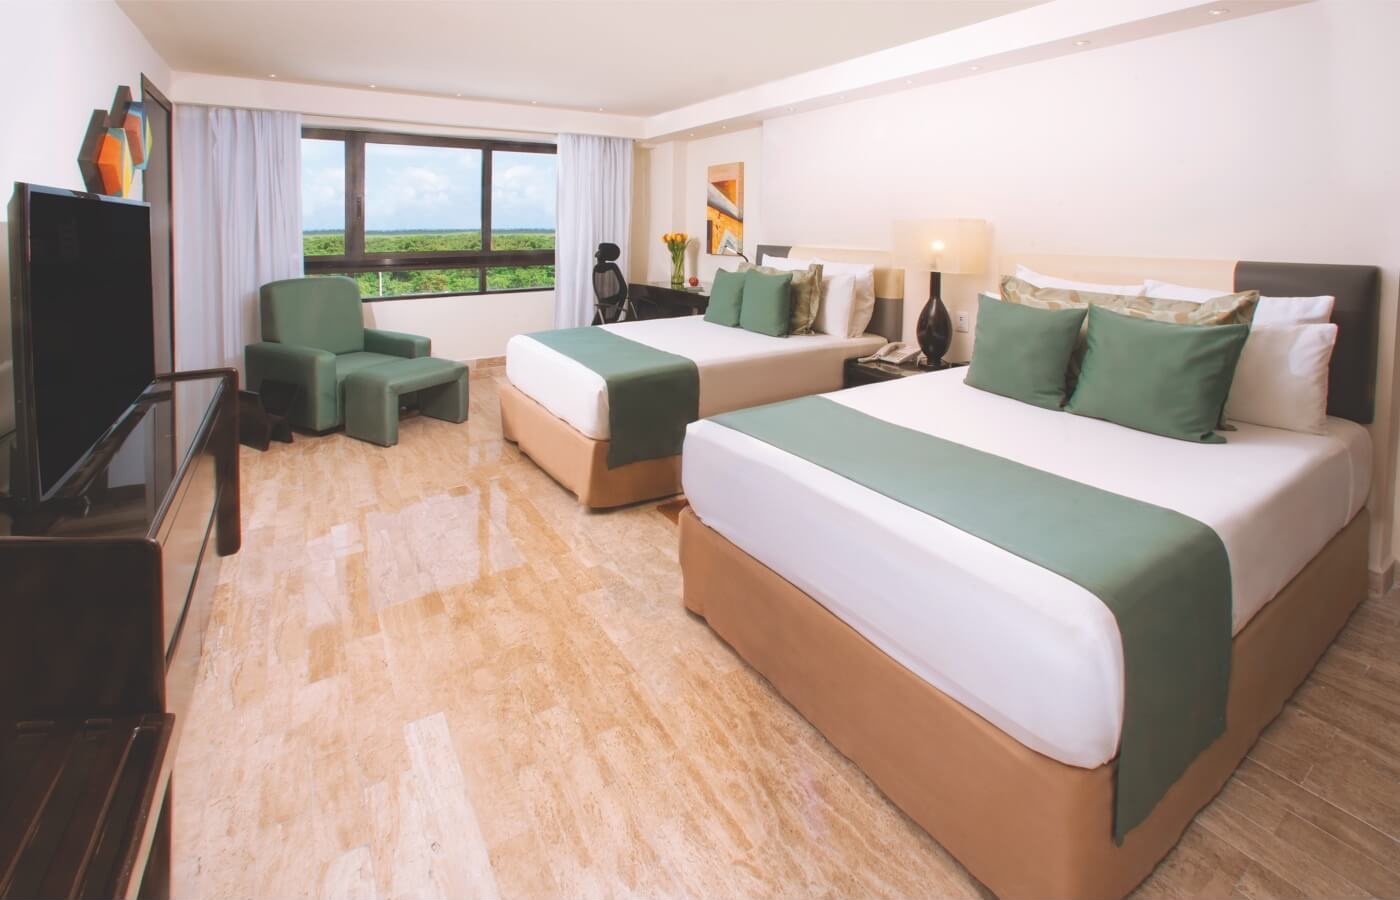 Room with two double beds and window with beautiful view in Smart Cancun by Oasis Hotel